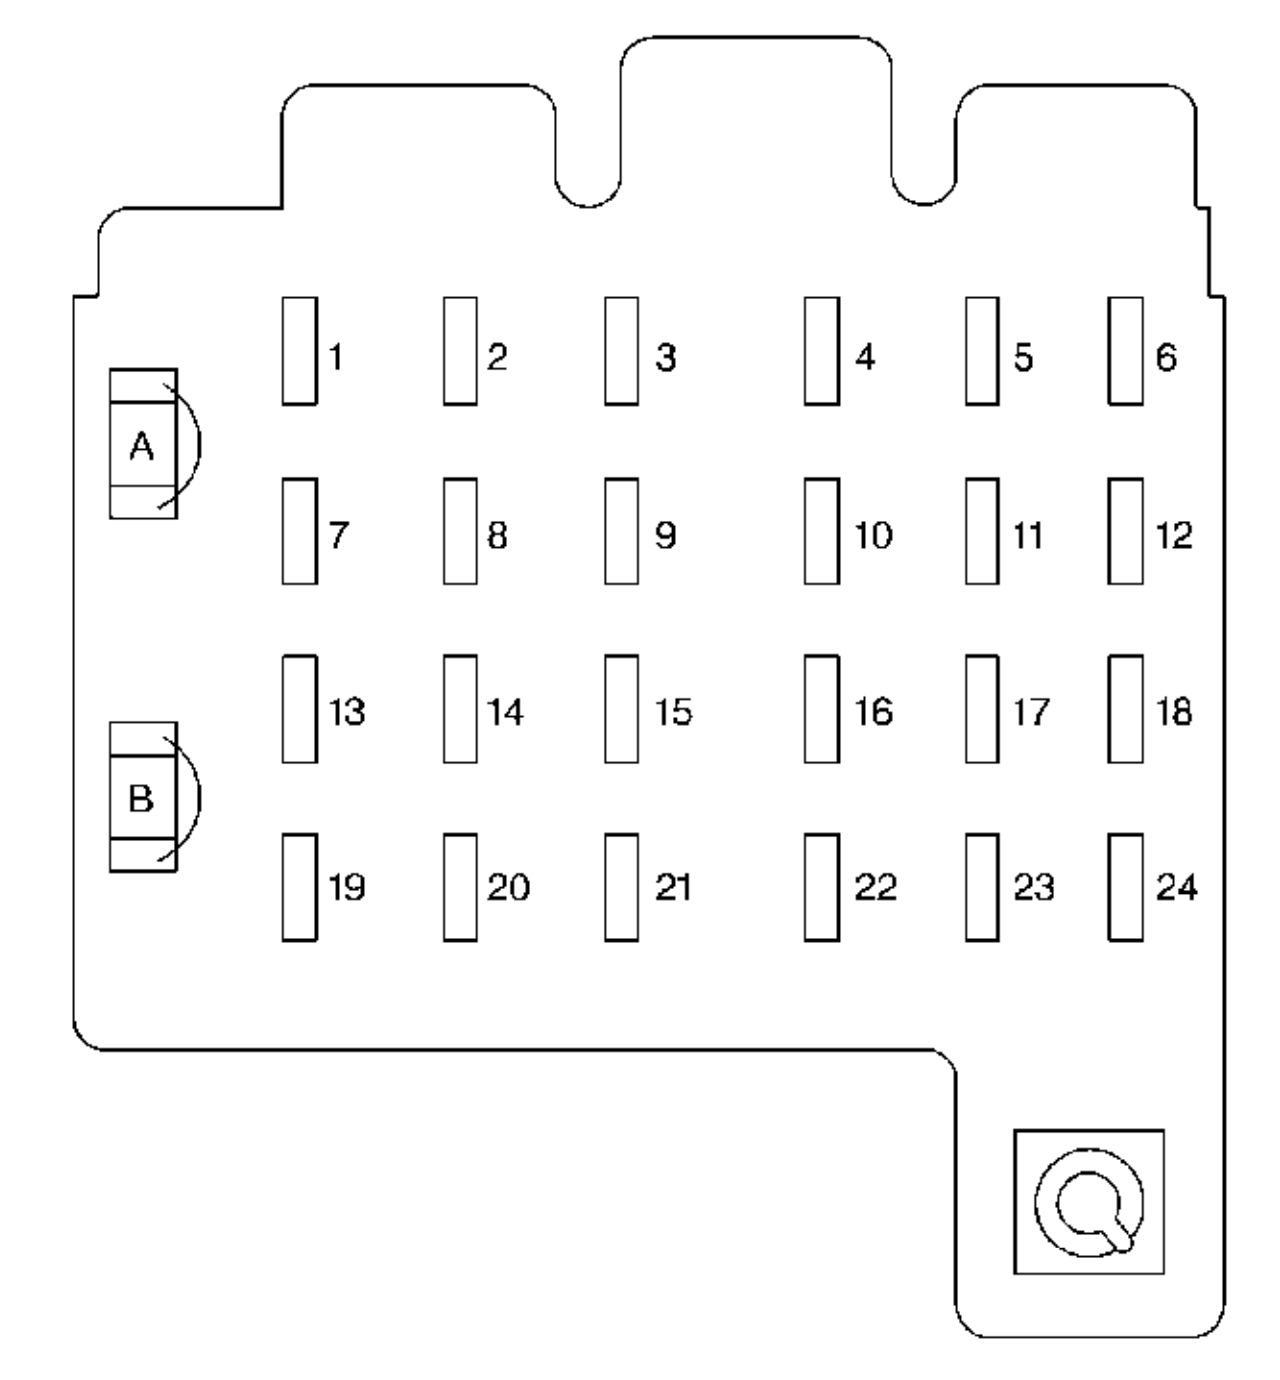 2006 Gmc Savana Fuse Box Diagram Wiring Library For 2005 99 Detailed Schematics Rh Jppastryarts Com 2001